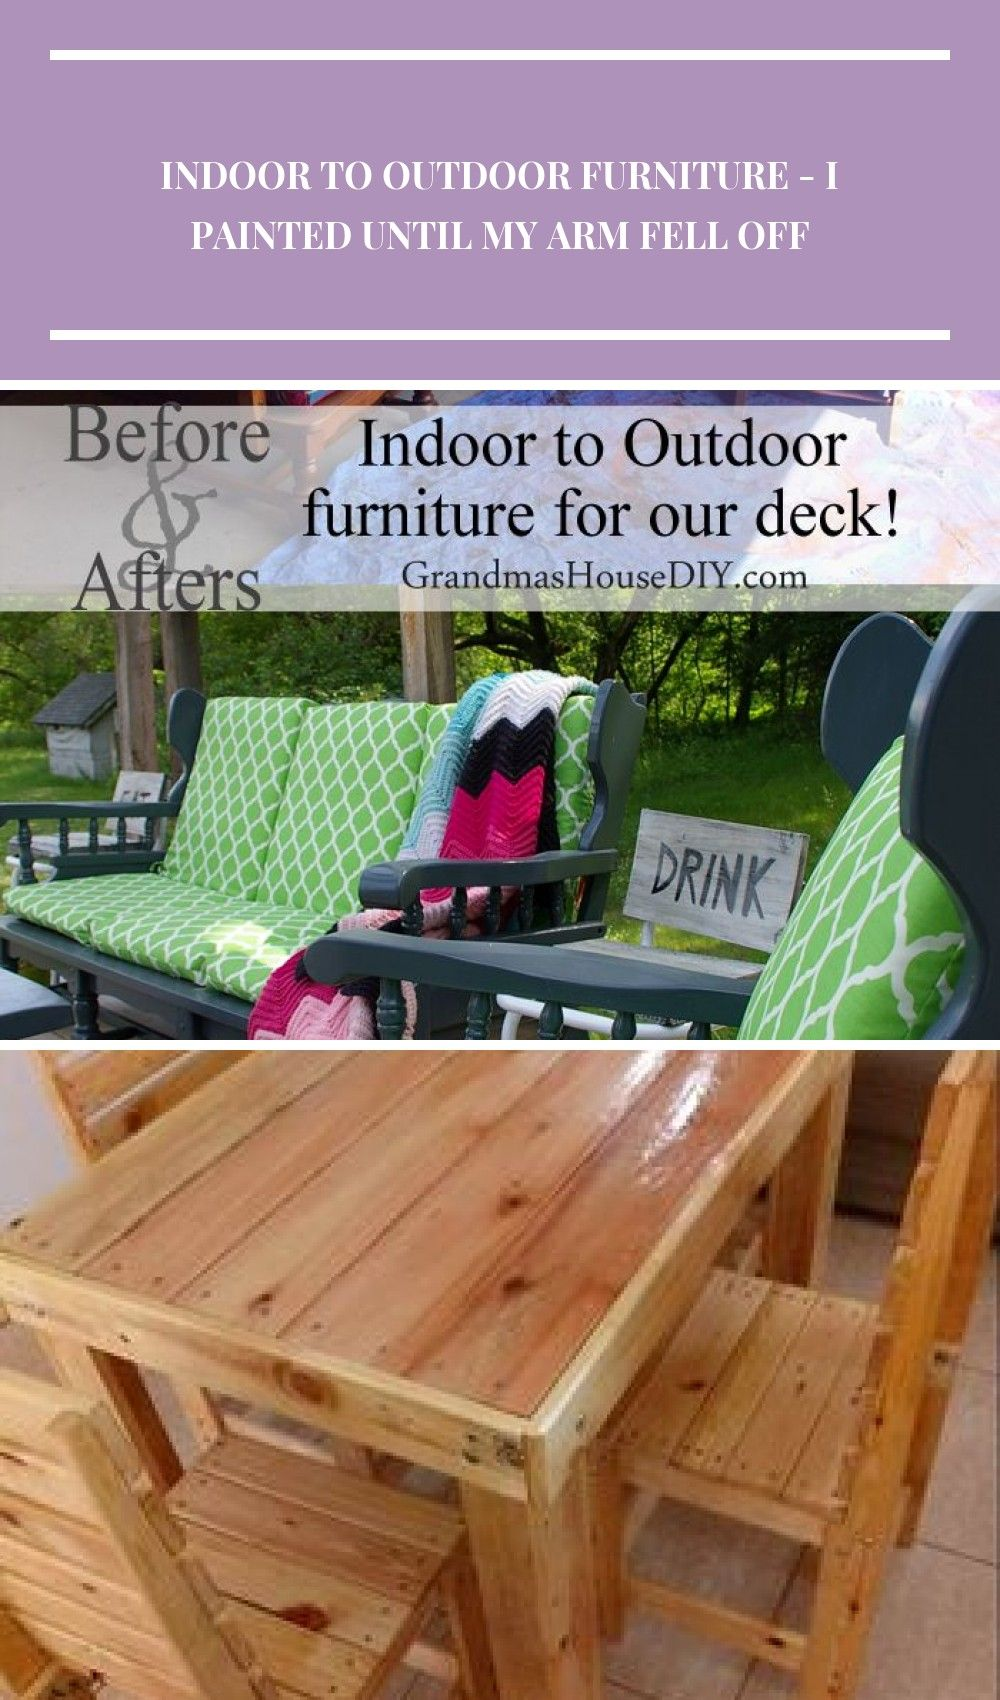 Converting Indoor Wooden Furniture To Outdoor Furniture For Our